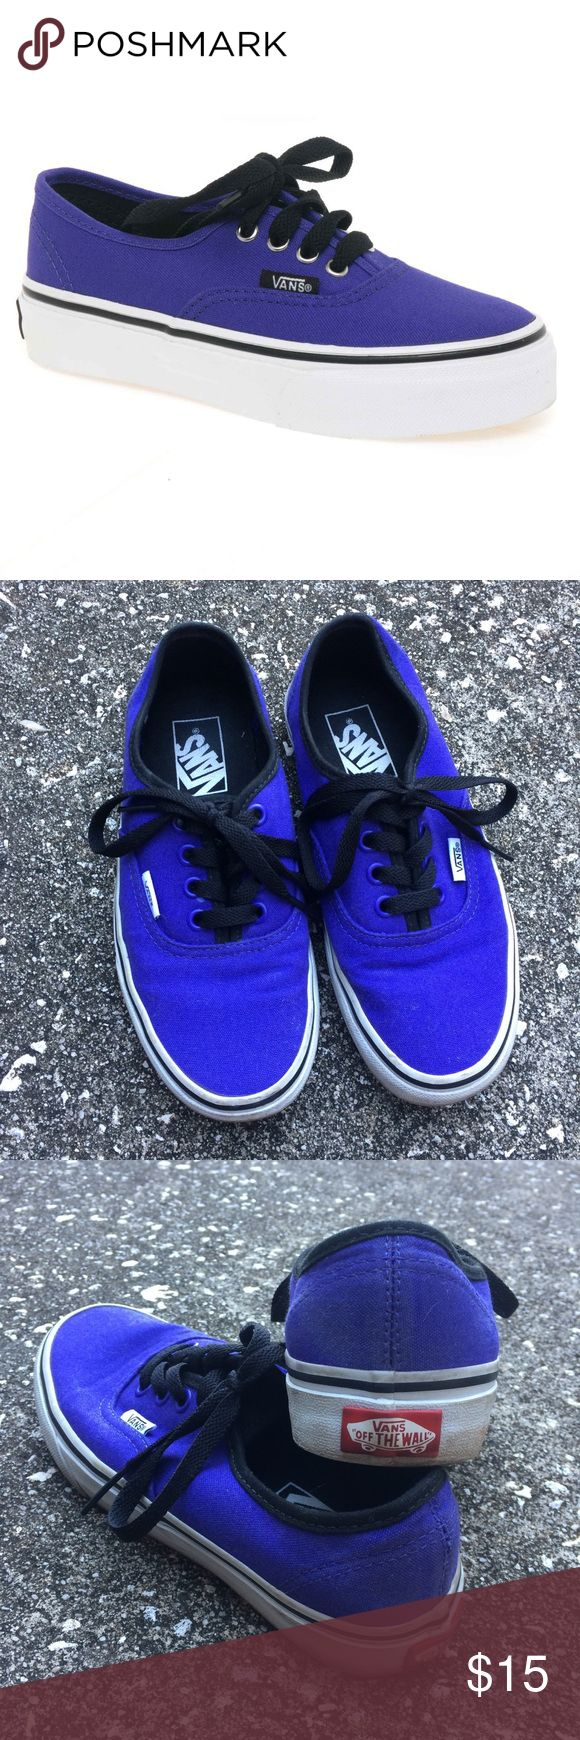 Purple Vans Authentic Vans. Purple with black laces and tongue. Cover photo shows most accurate color. Selling the actual shoes pictured. The white foxing of the shoes could use some cleaning up but these are in excellent condition and worn very few times!   {{ skate boarding sk8 off the wall 1966 old skool era lo pro california custom royal sneakers sneakerhead }}   ⬇️ Please comment with any questions! ⬇️  💬 Negotiate via offer feature 💬  ❤️✨ BUNDLE to SAVE ✨❤️ Vans Shoes Sneakers